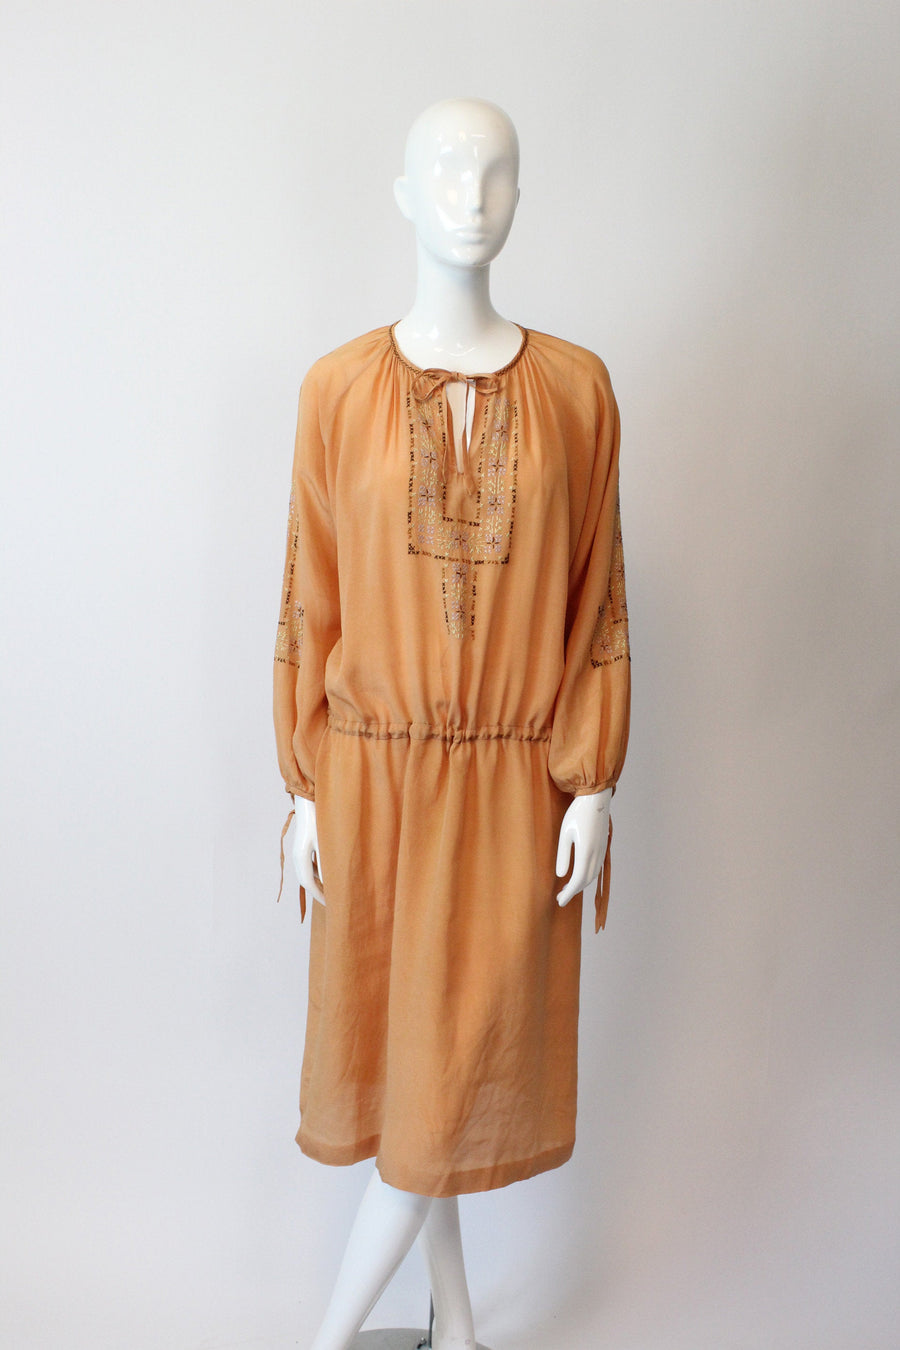 1920s peasant dress silk small medium | vintage embroidered hungarian dress | new in